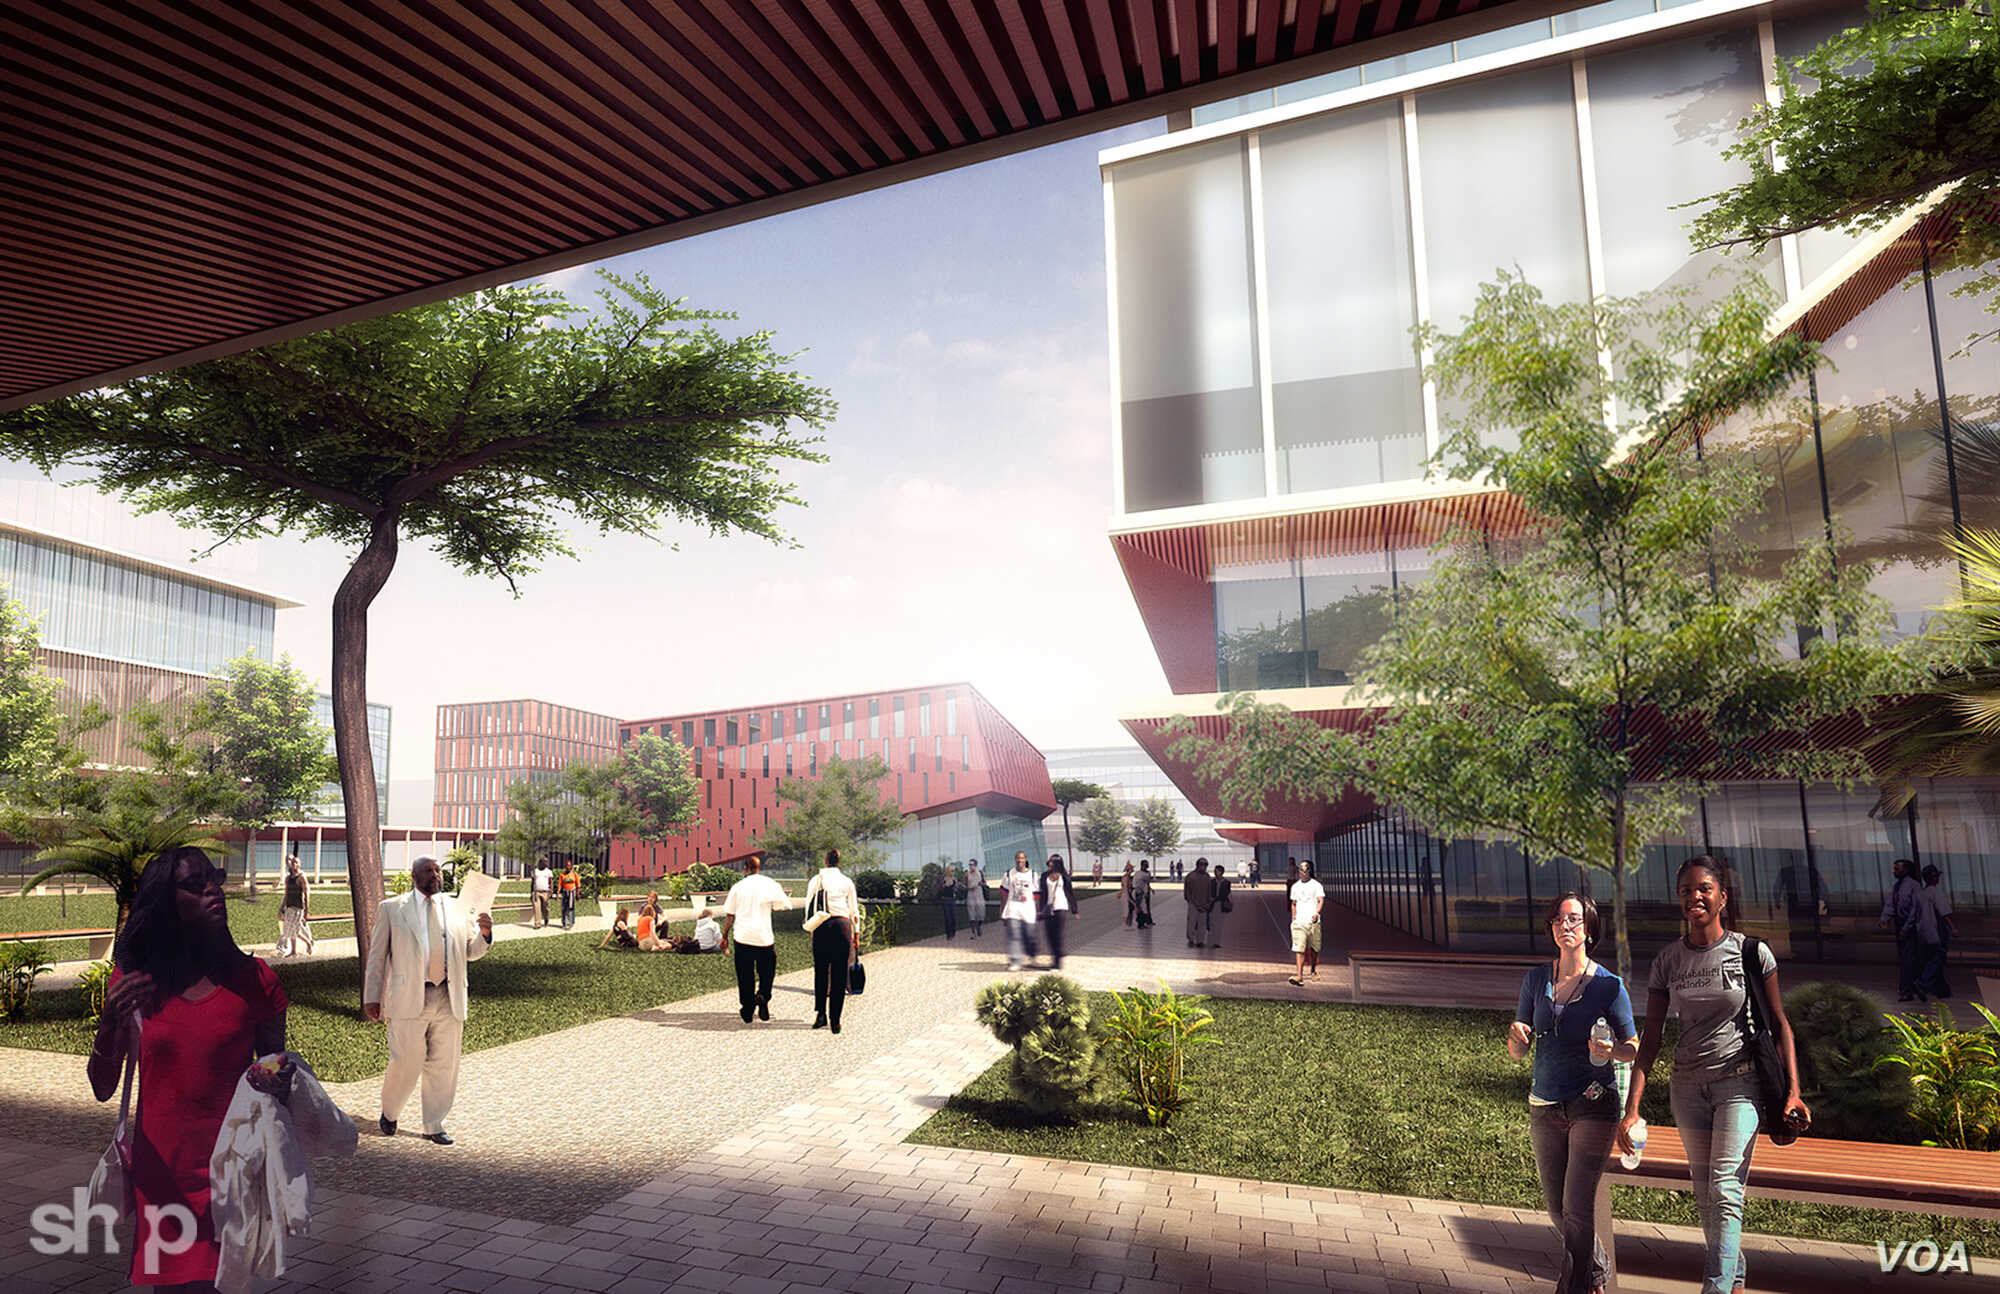 An artist's rendering shows the concept of a university area in the Konza Technopolis, Kenya.